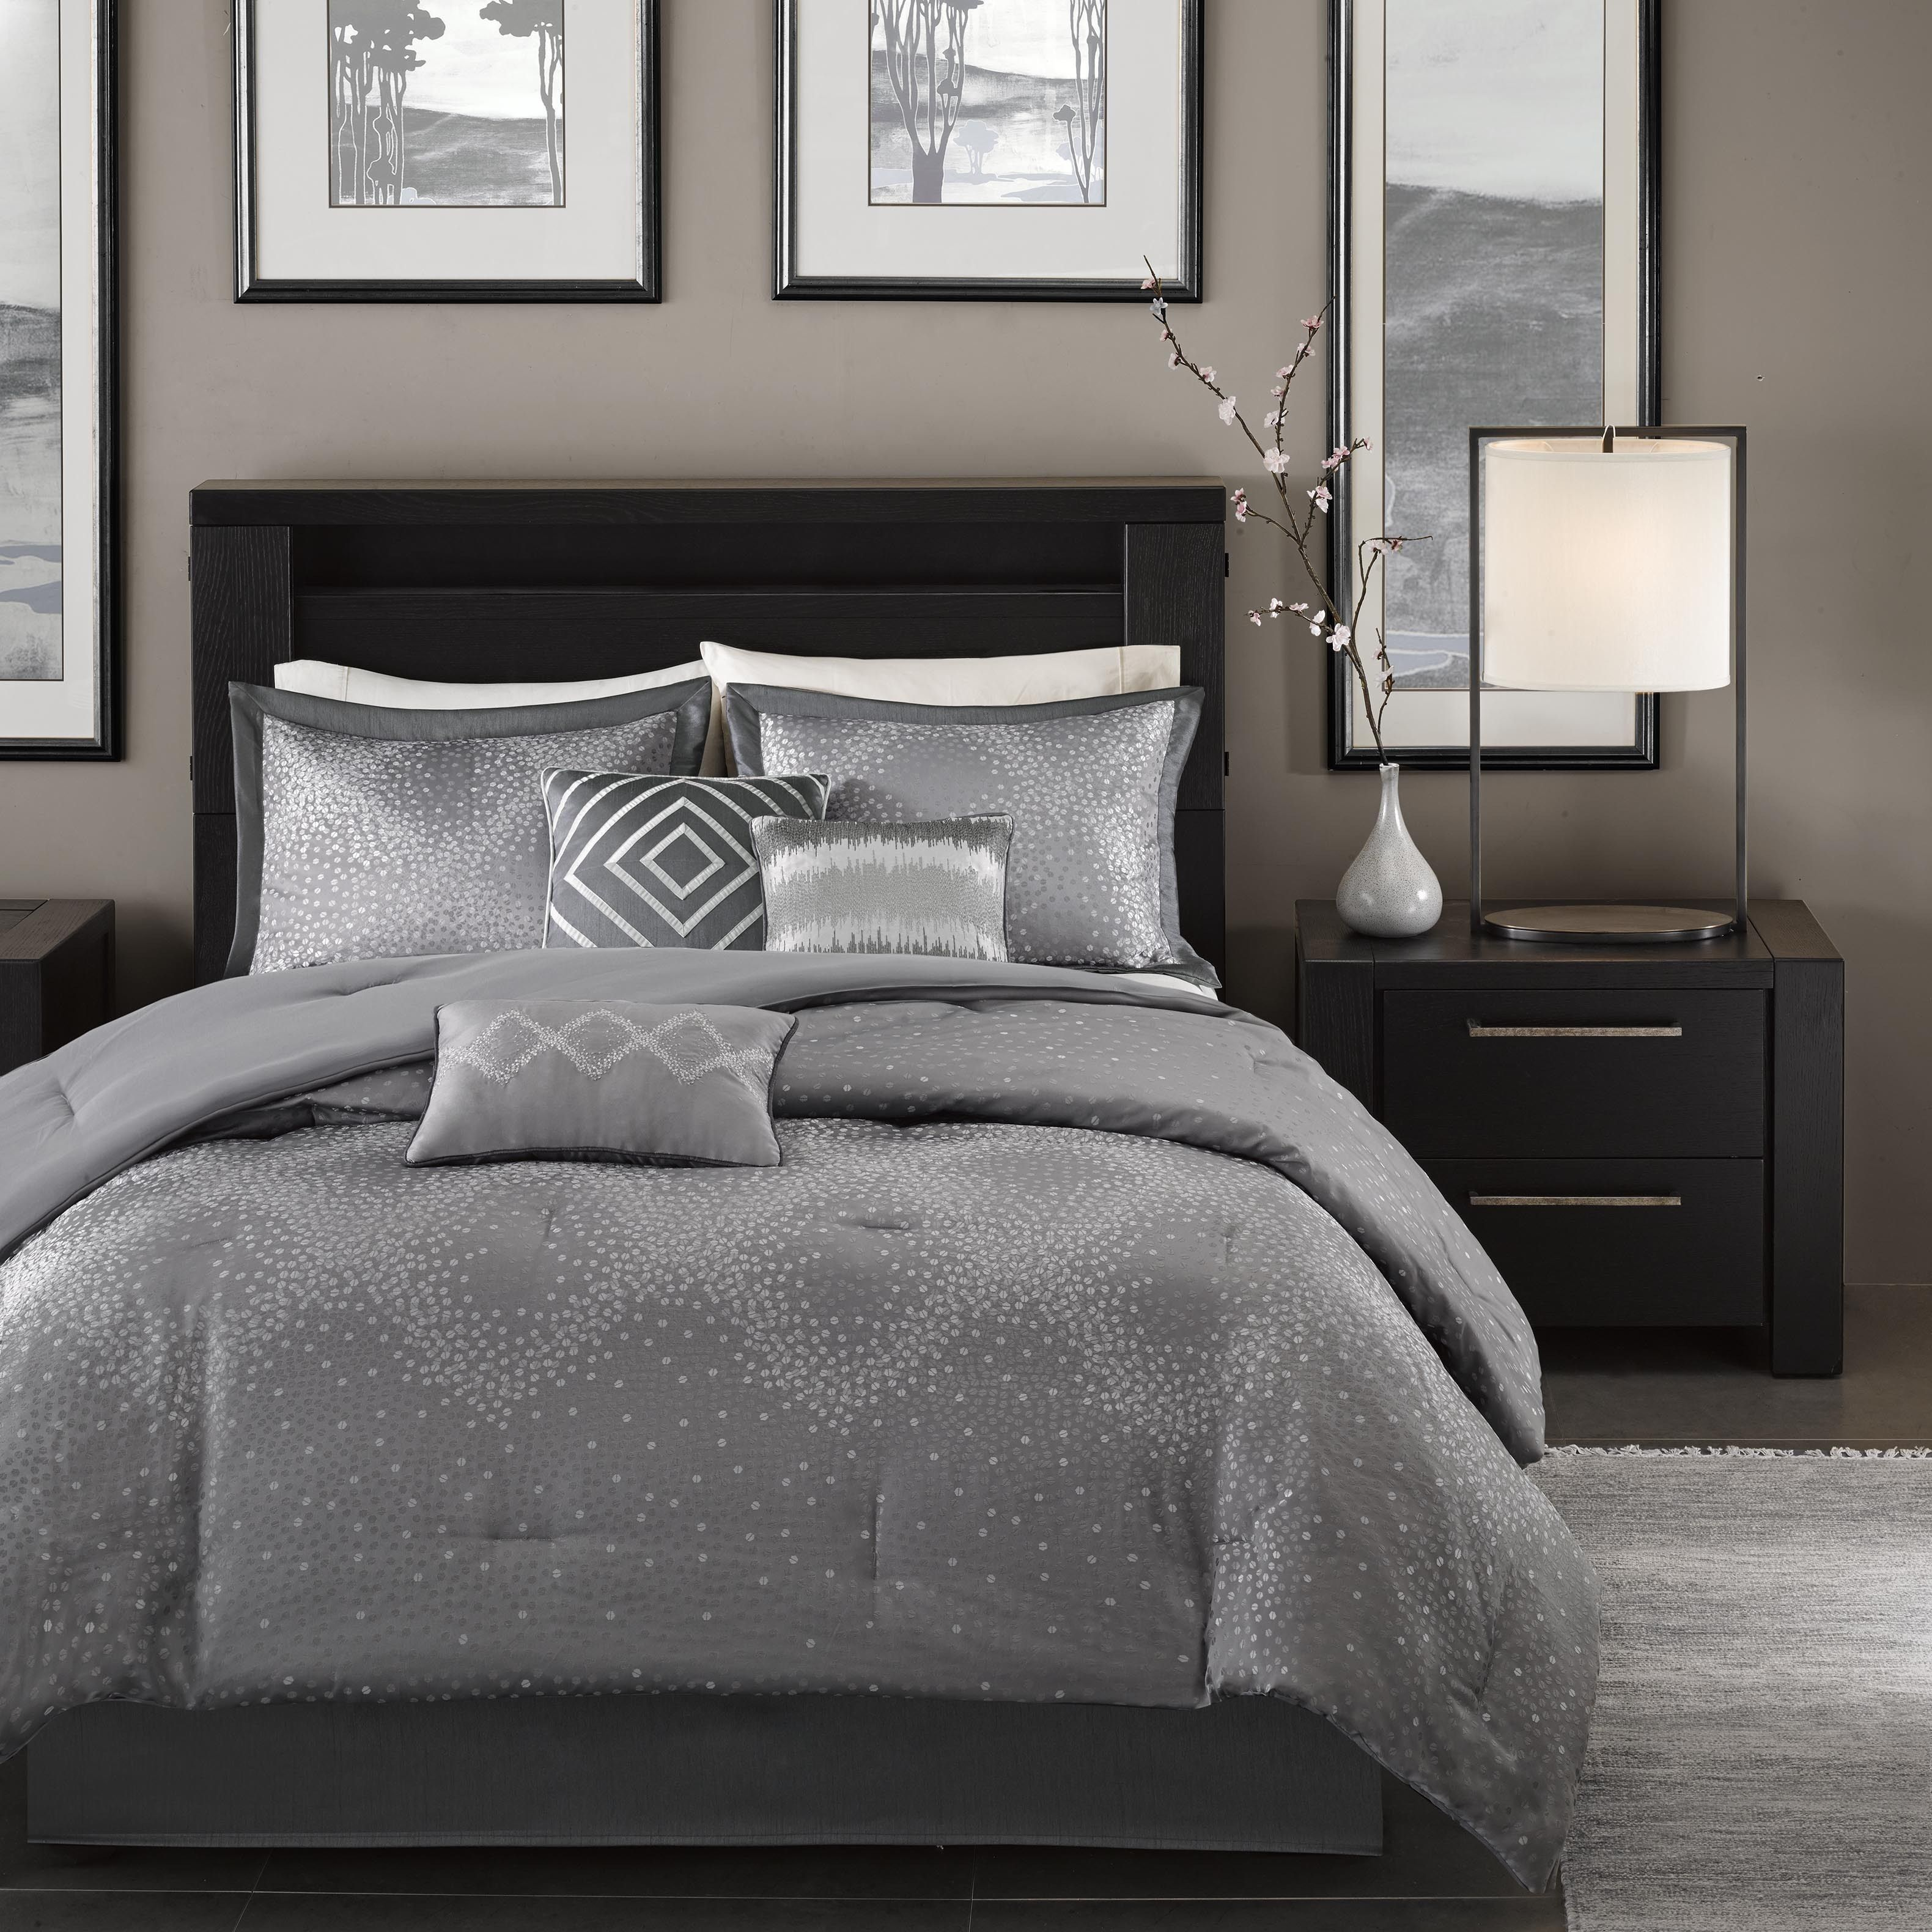 contemporary king comforter sets For a modern twist to sequins, the Madison Park Crawford comforter  contemporary king comforter sets